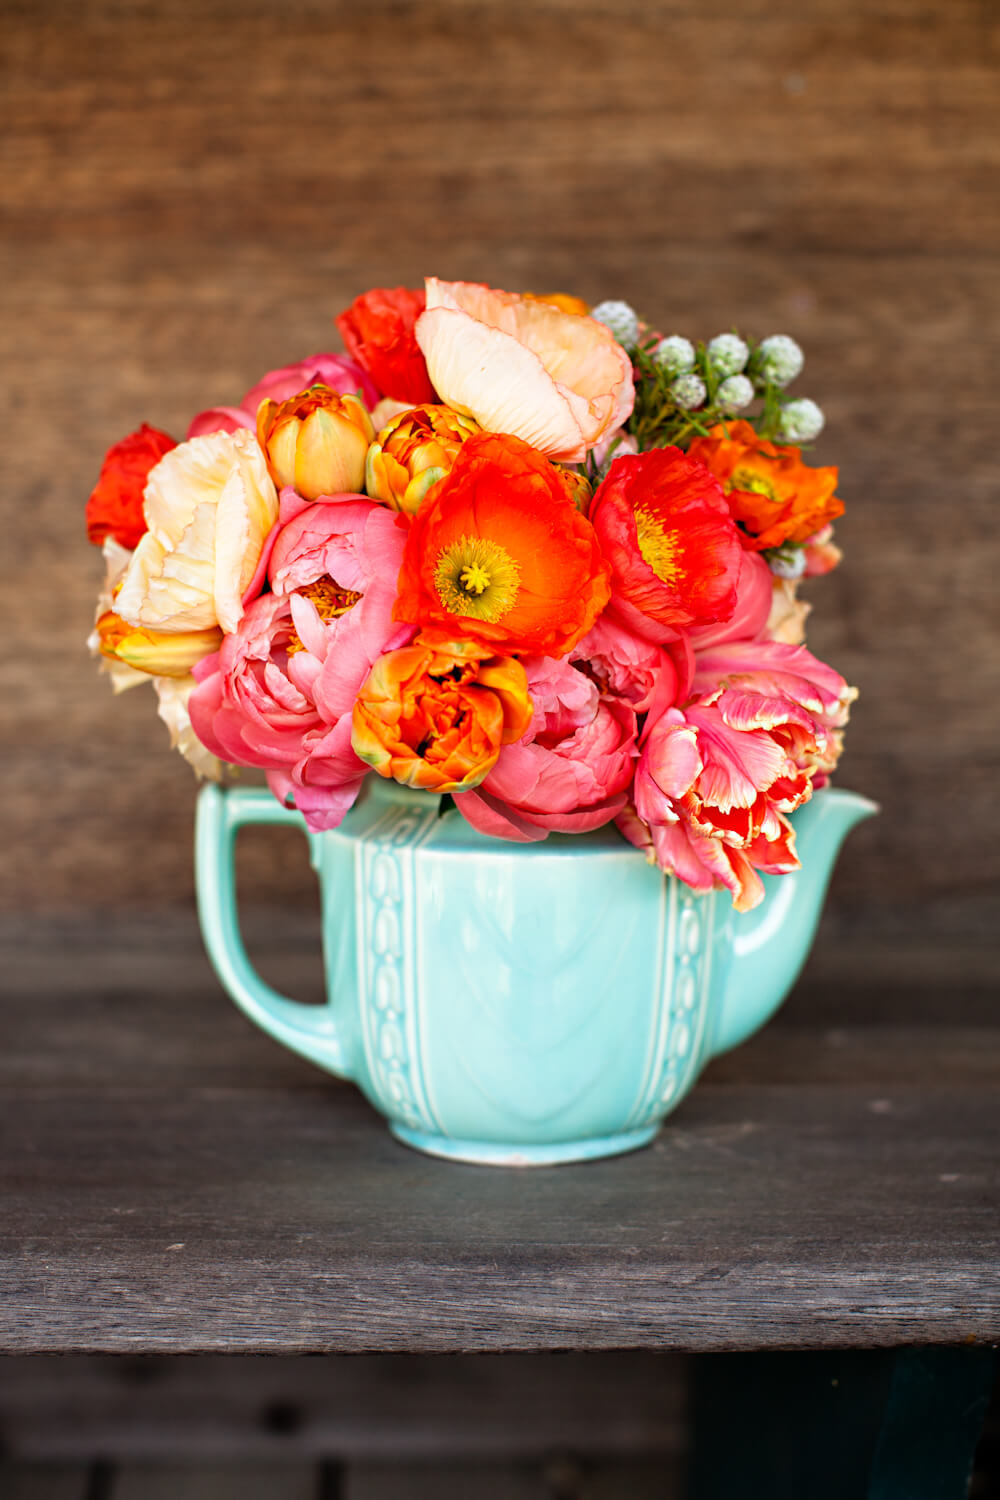 Cool Mint Teapot Bursting with Fiery Blossoms